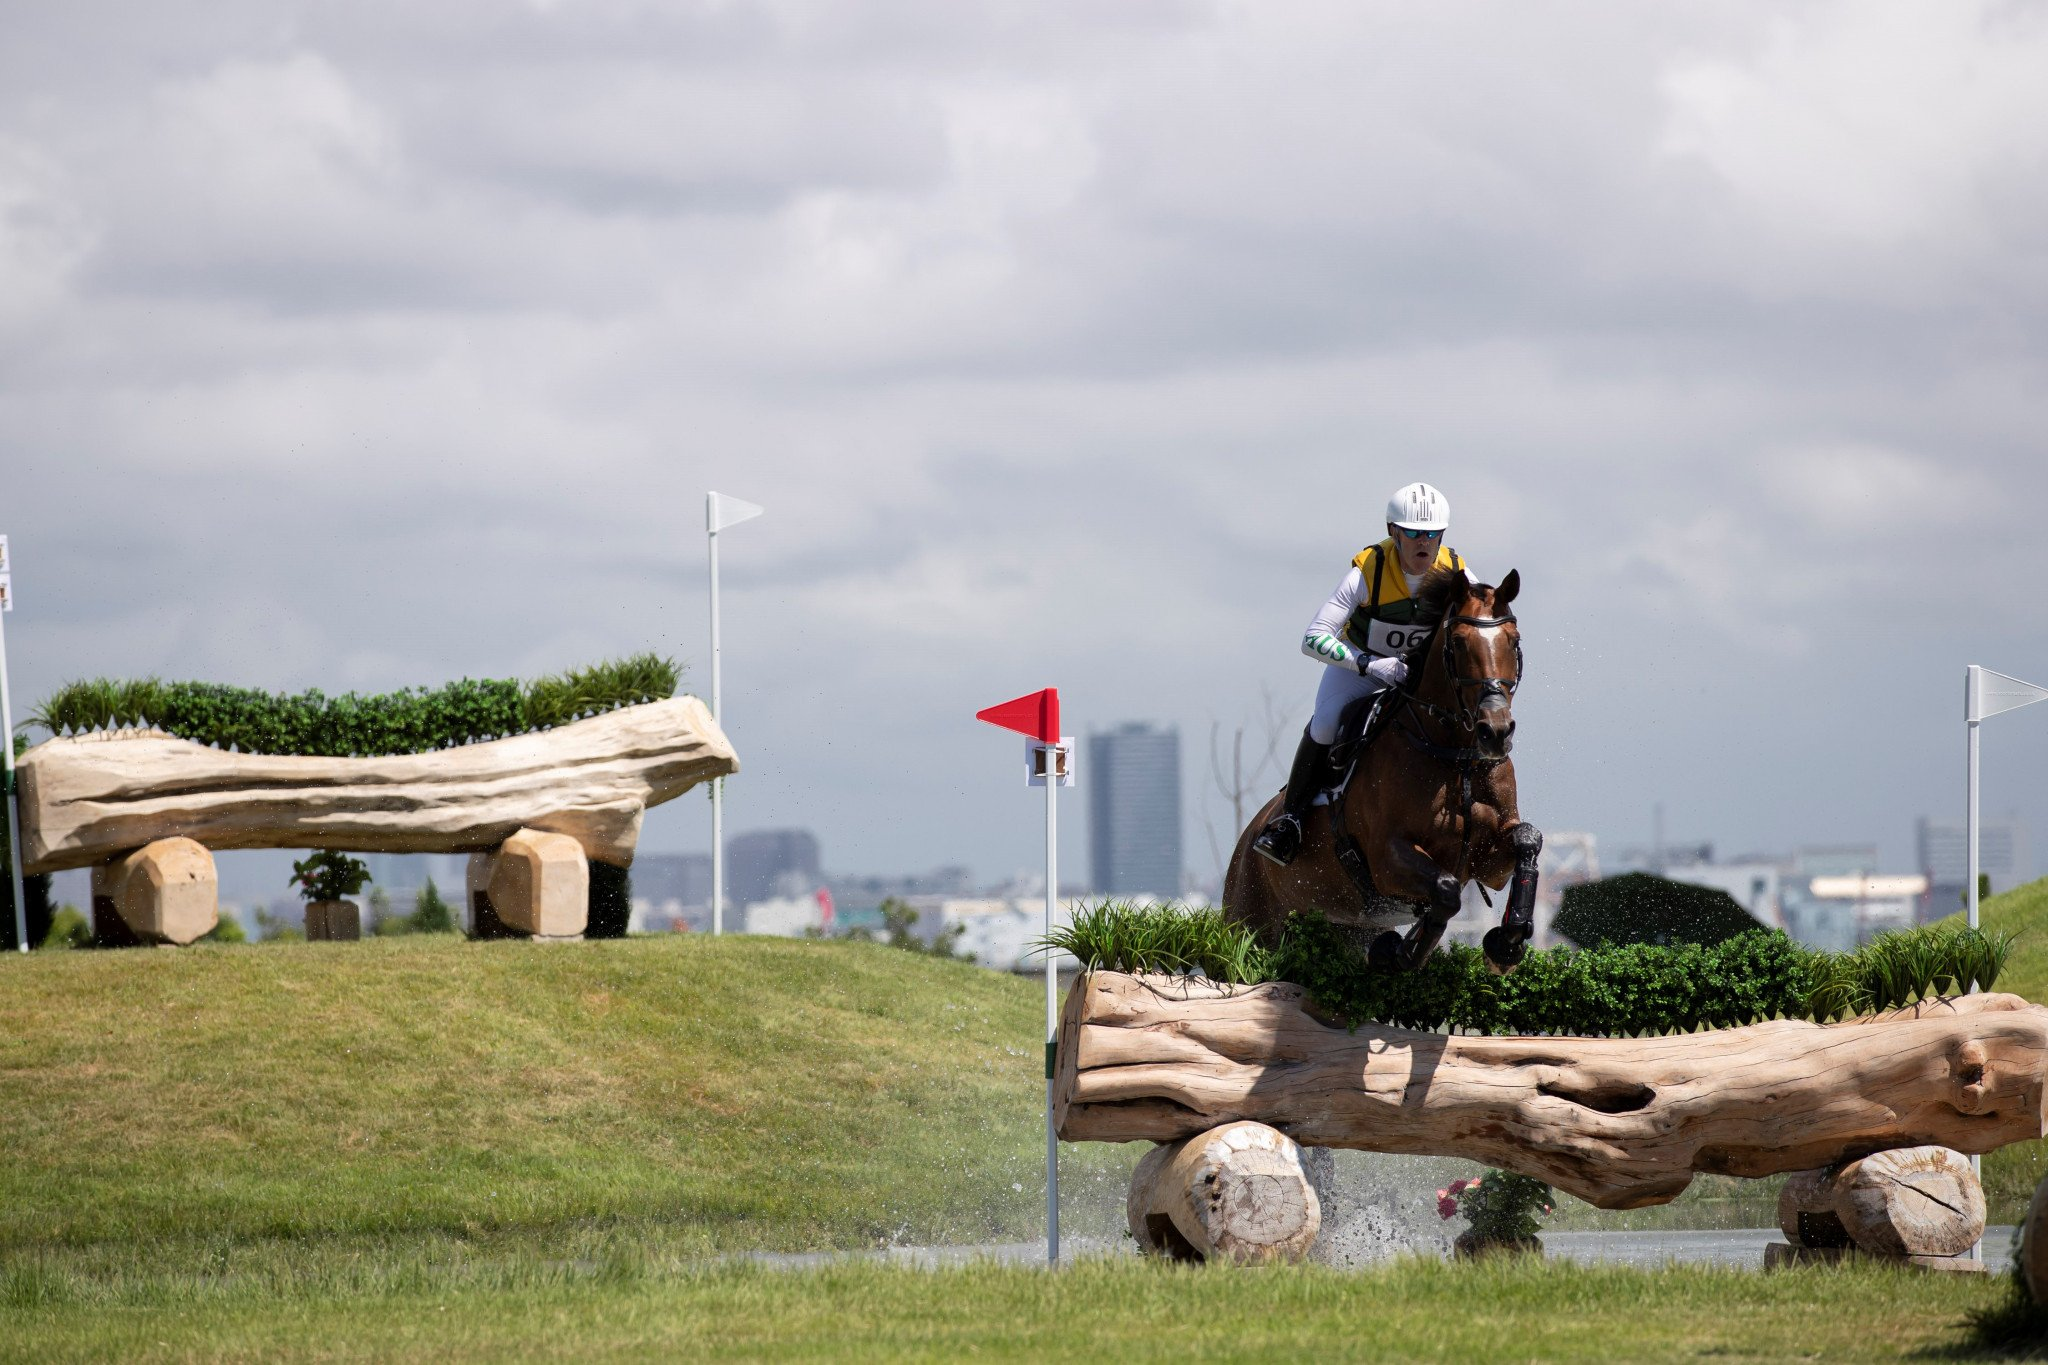 Triple Olympic gold medallist Hoy takes lead after cross-country phase of Tokyo 2020 eventing test event